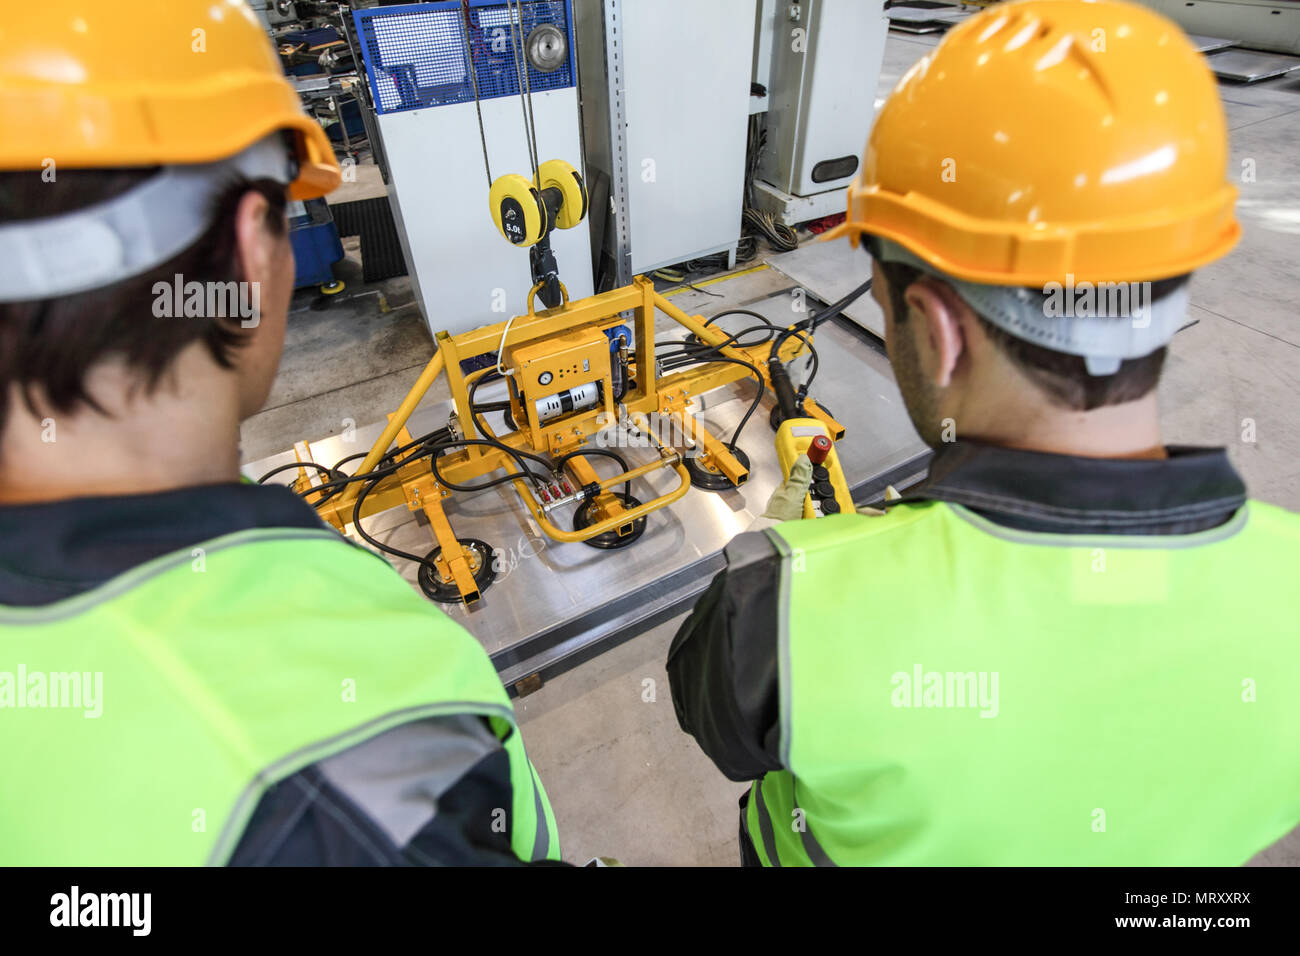 Workers near metal sheet lifting device at factory - Stock Image